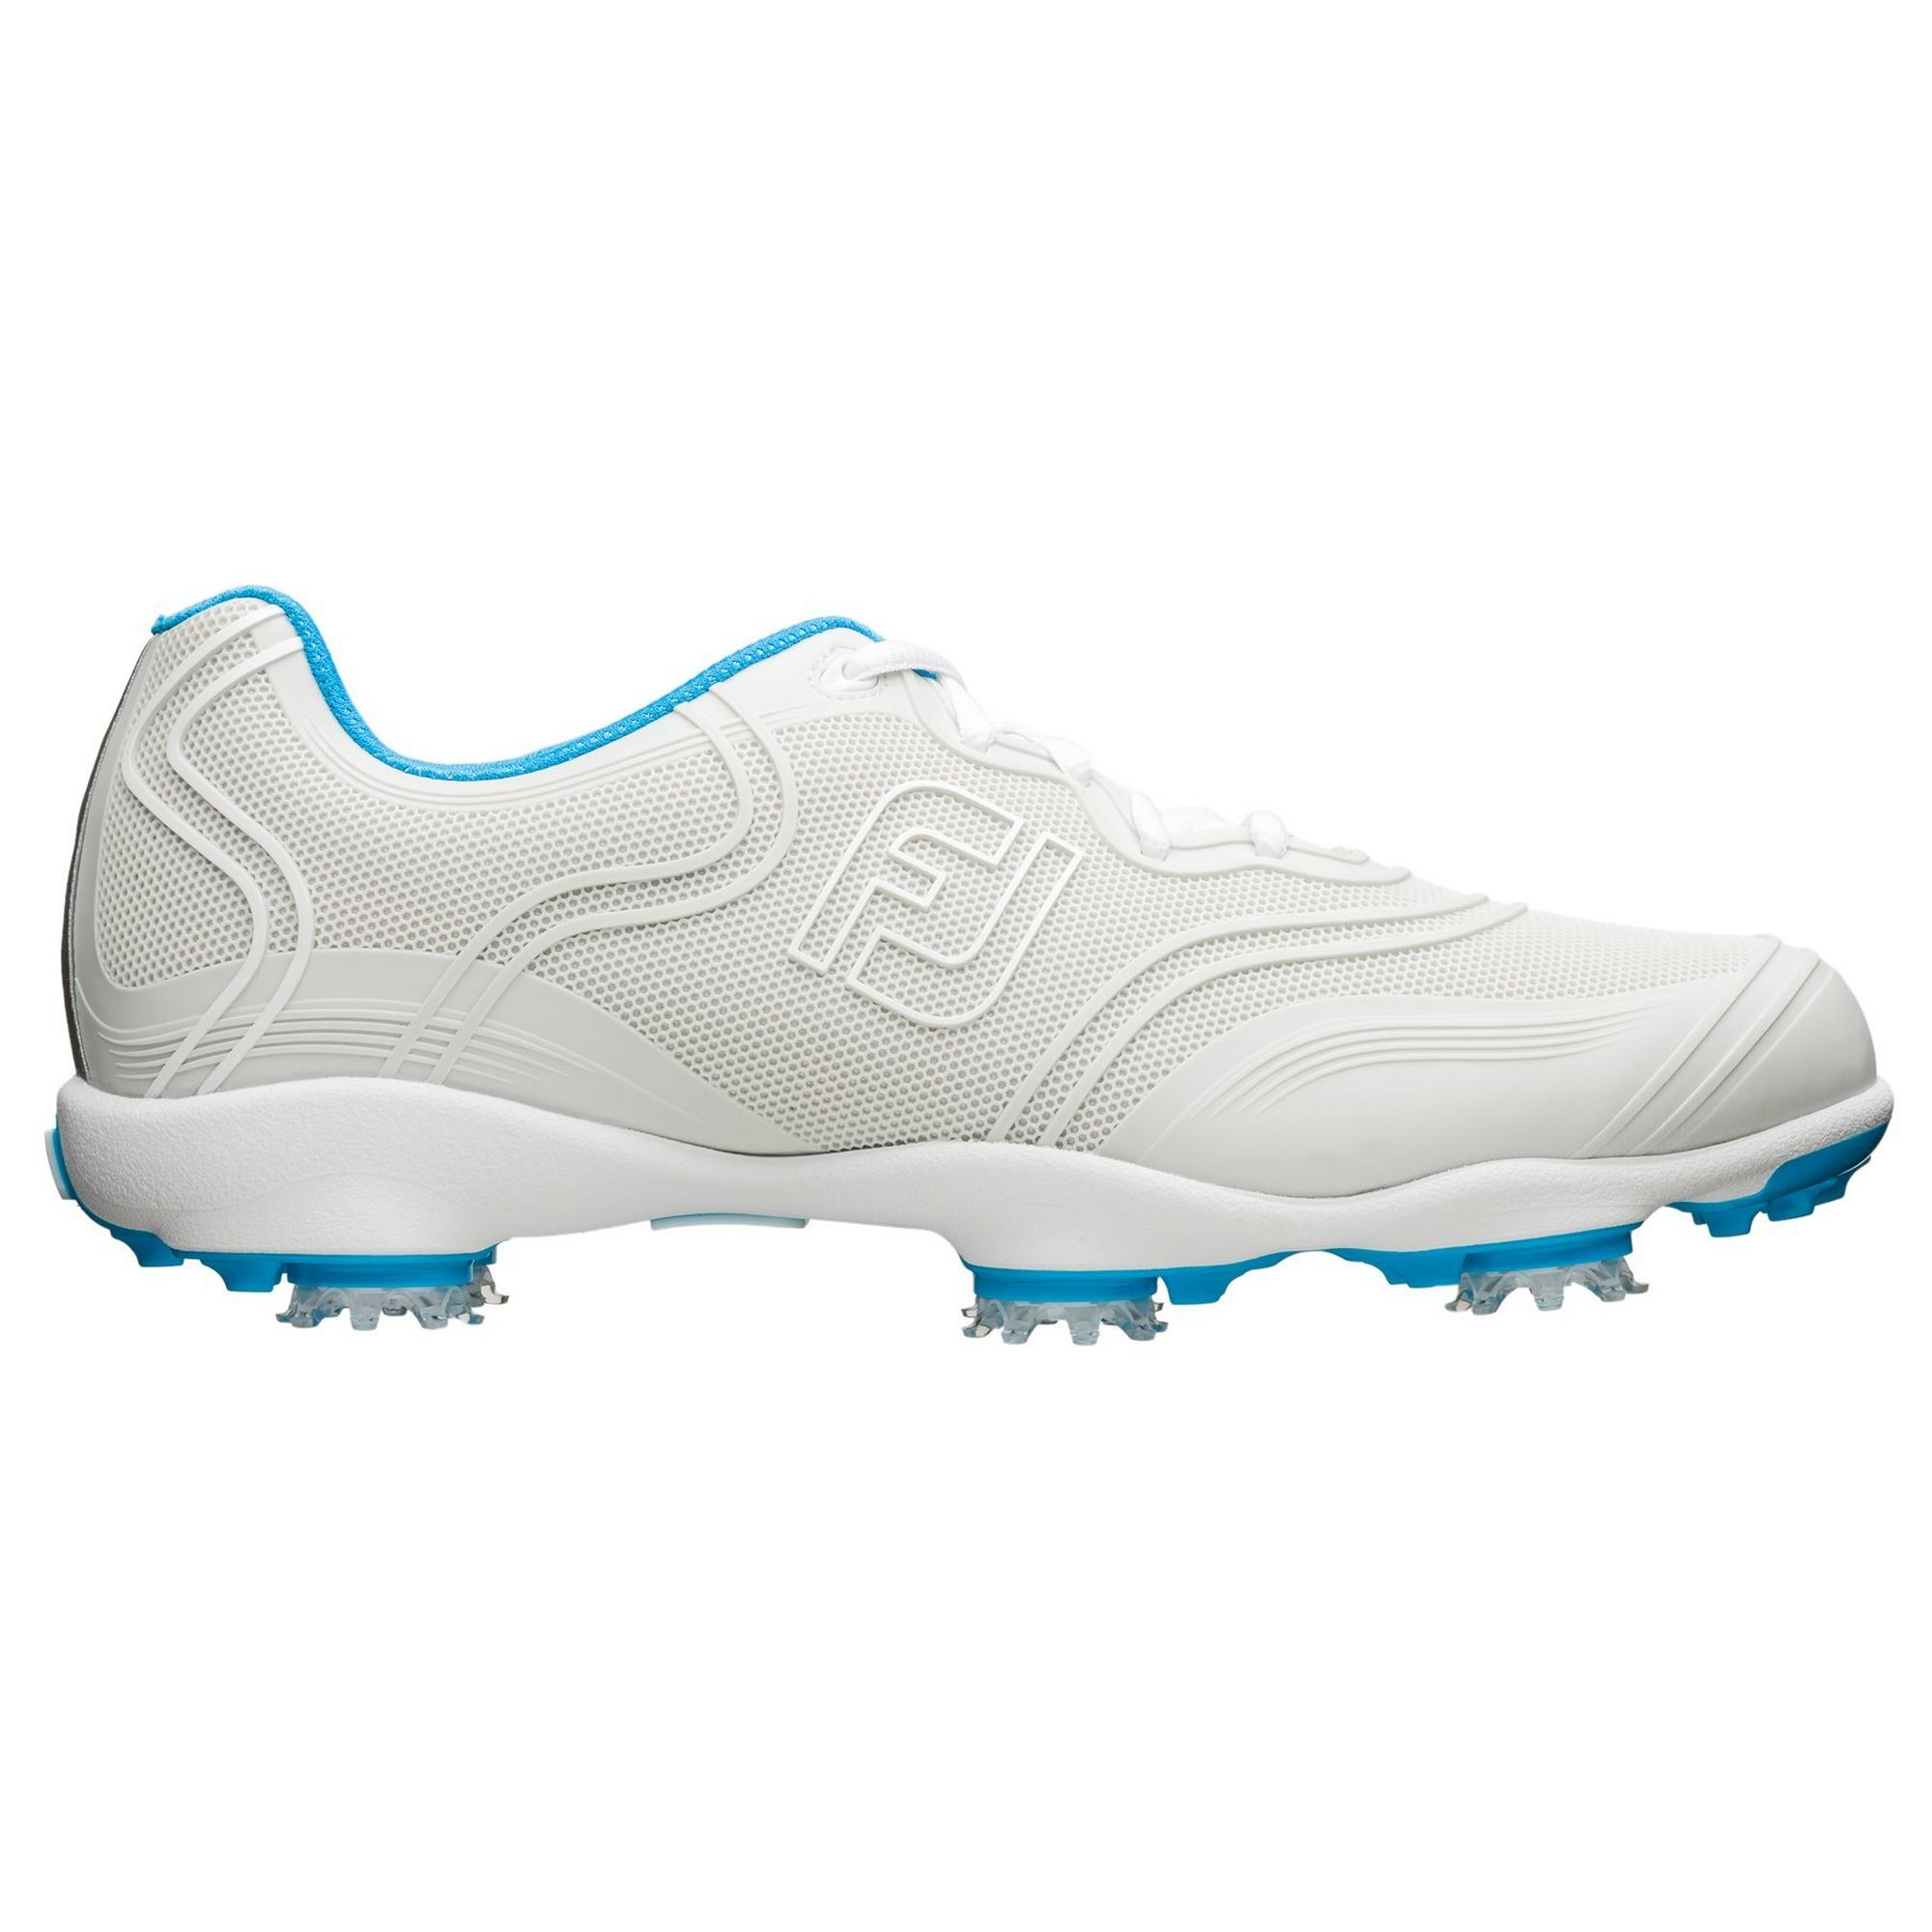 Women's Aspire Spiked Golf Shoe-White